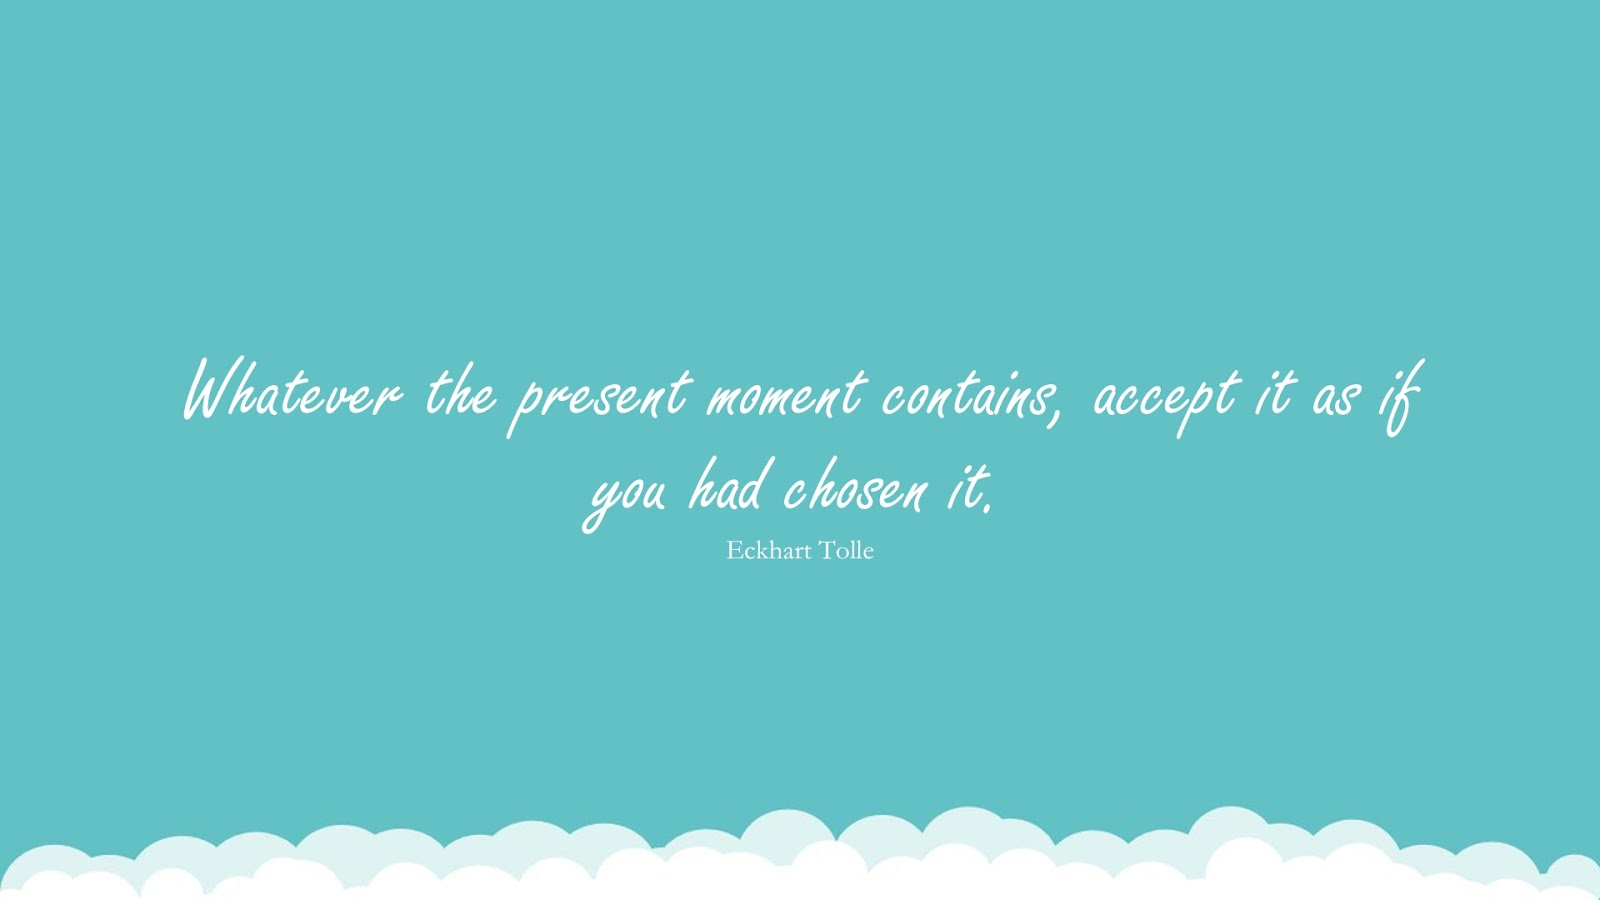 Whatever the present moment contains, accept it as if you had chosen it. (Eckhart Tolle);  #CharacterQuotes